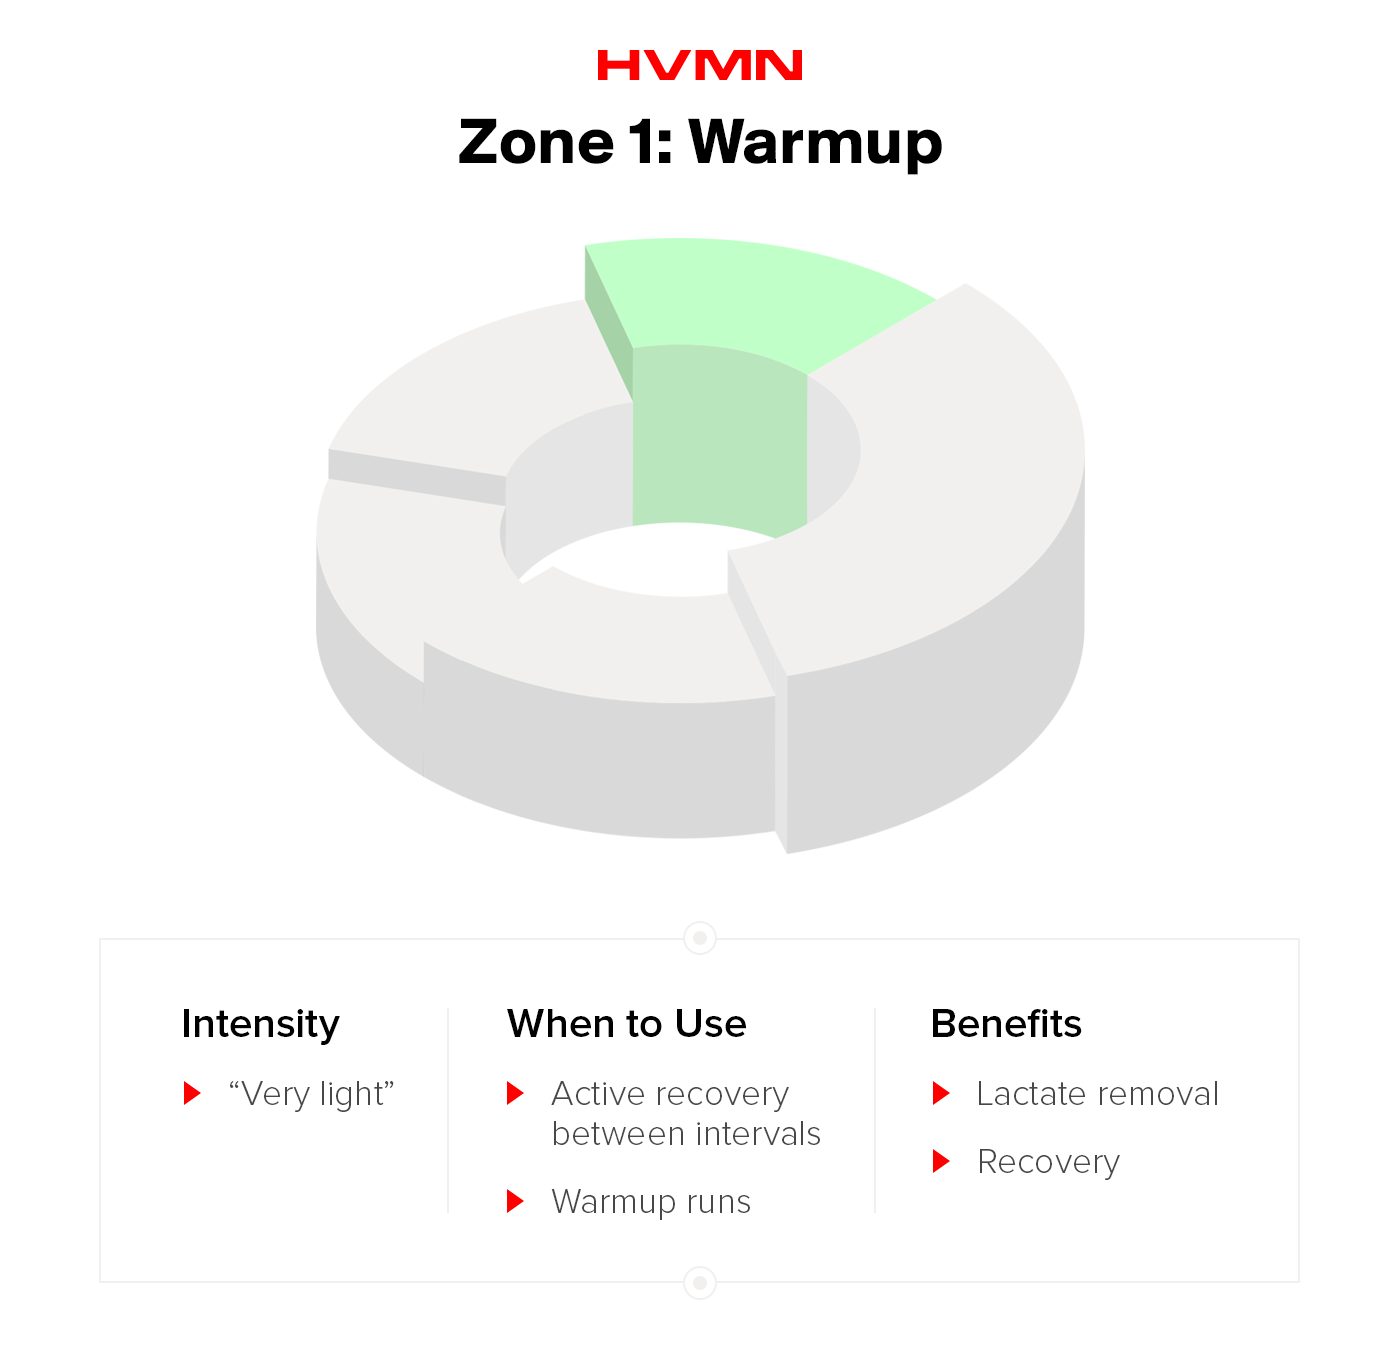 HR Zone 1: Warmup Zone